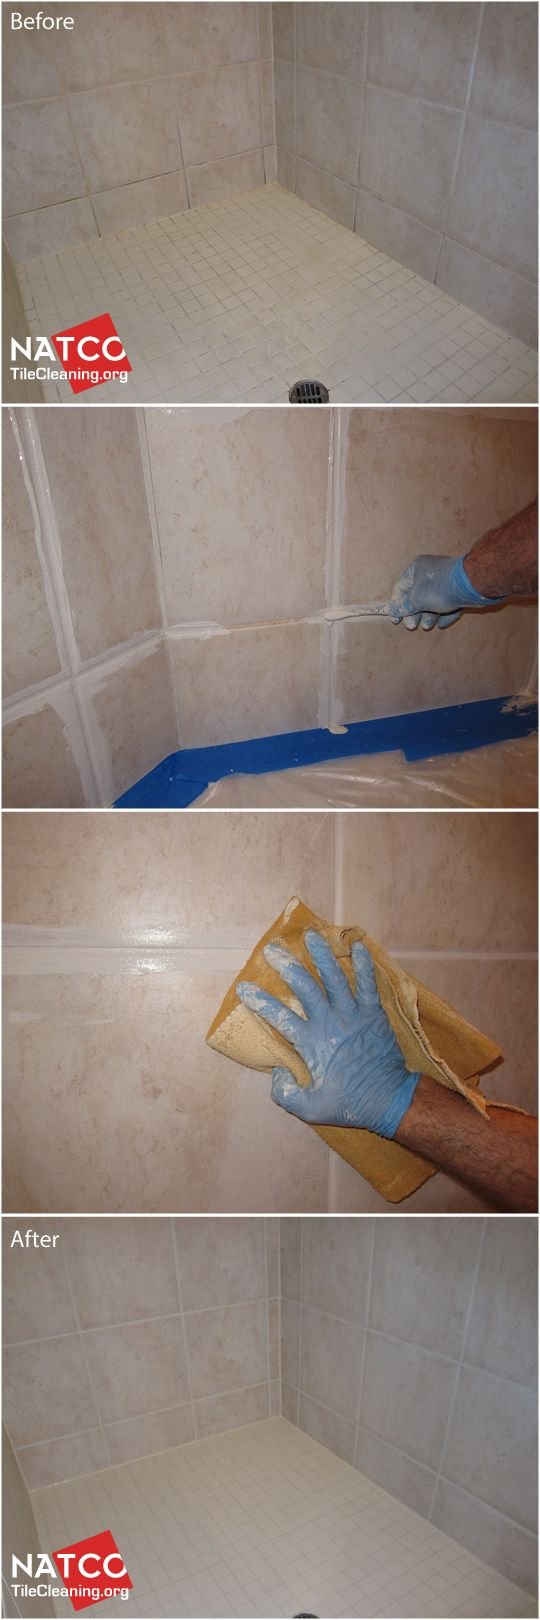 to clean grout in shower cleaning moldy shower cleaning cleaning grout